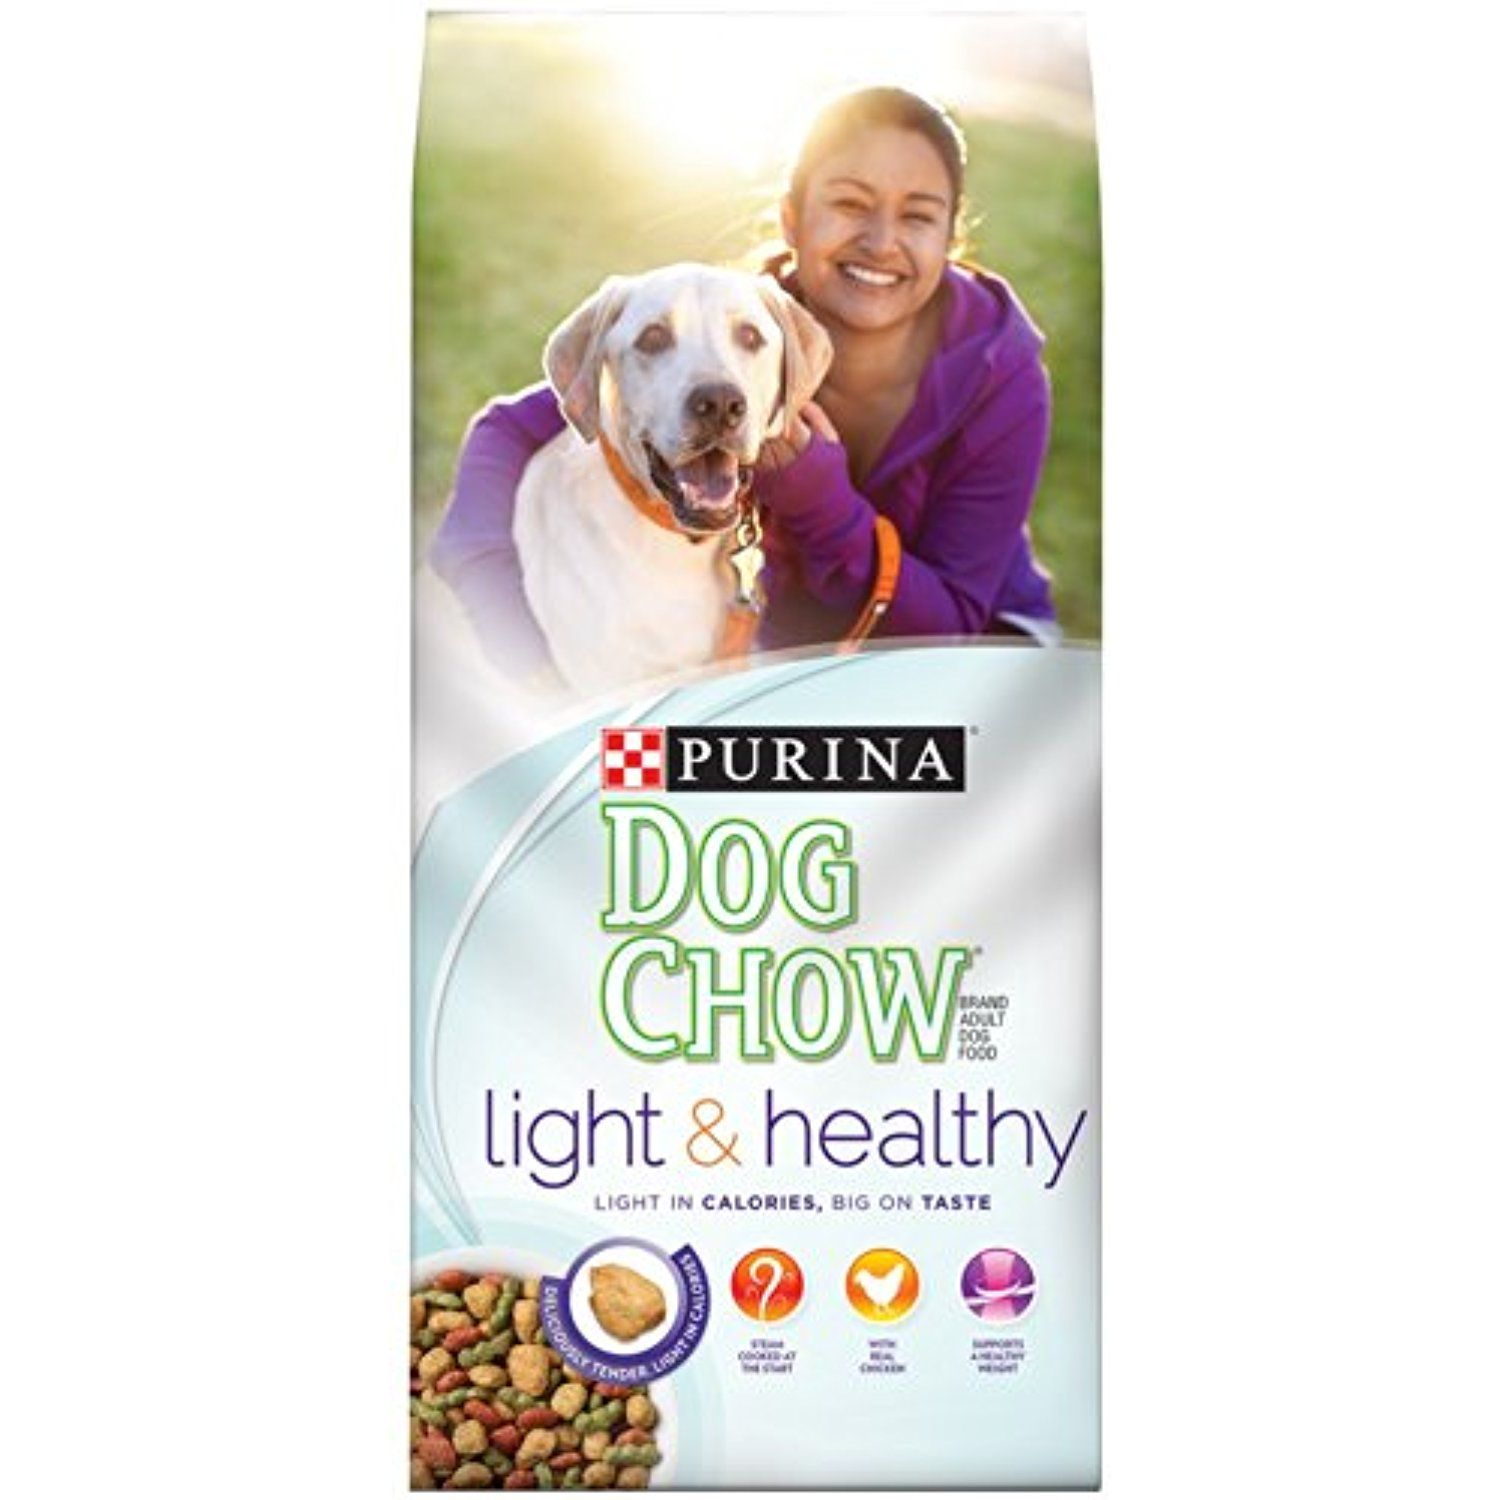 Dog Food 16 5 Lb Pack Of 12 For More Information Visit Image Link This Is An Affiliate Link And I Receive A C Purina Dog Chow Best Dog Food Dry Dog Food